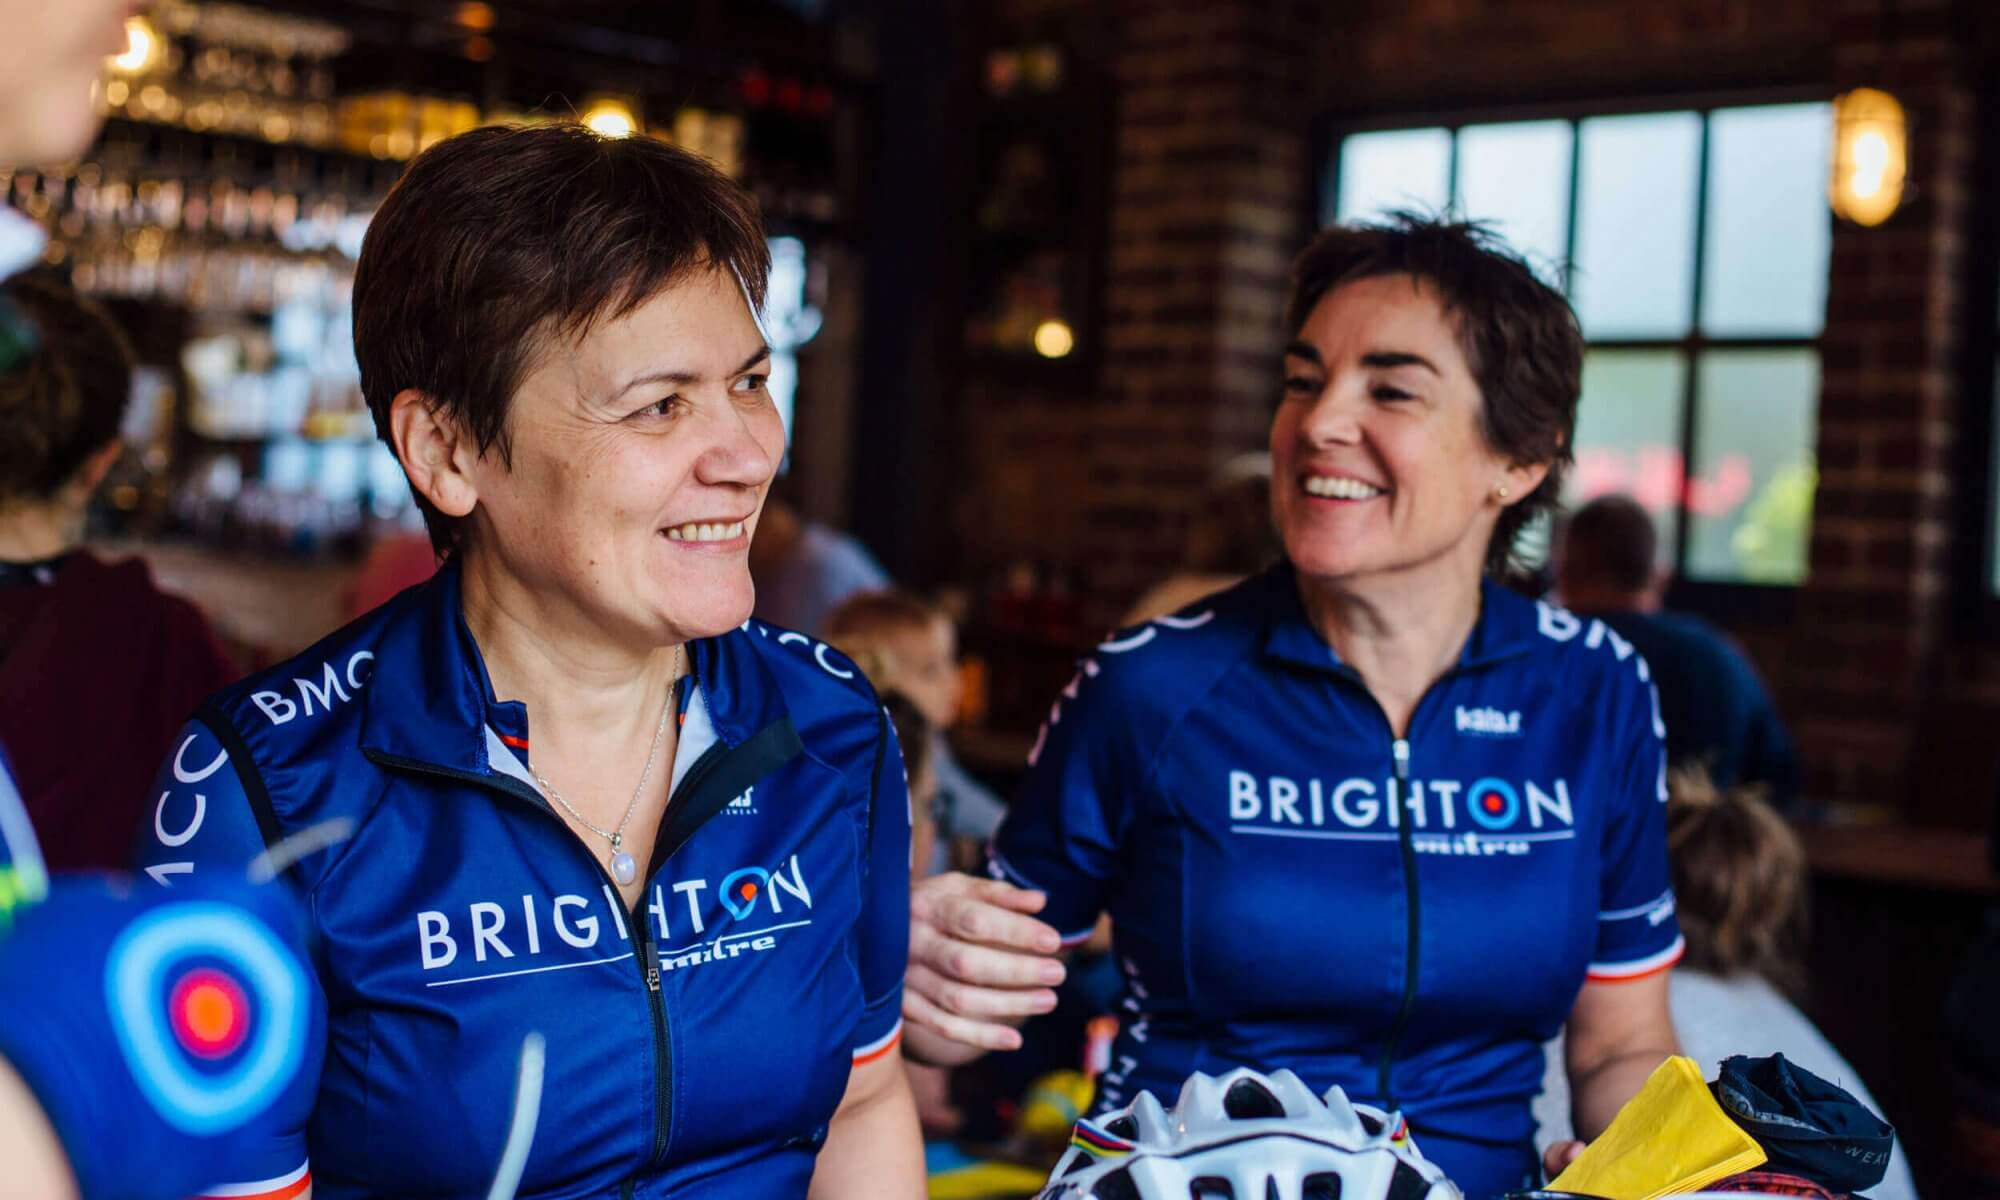 Brighton Mitre Cycling Club